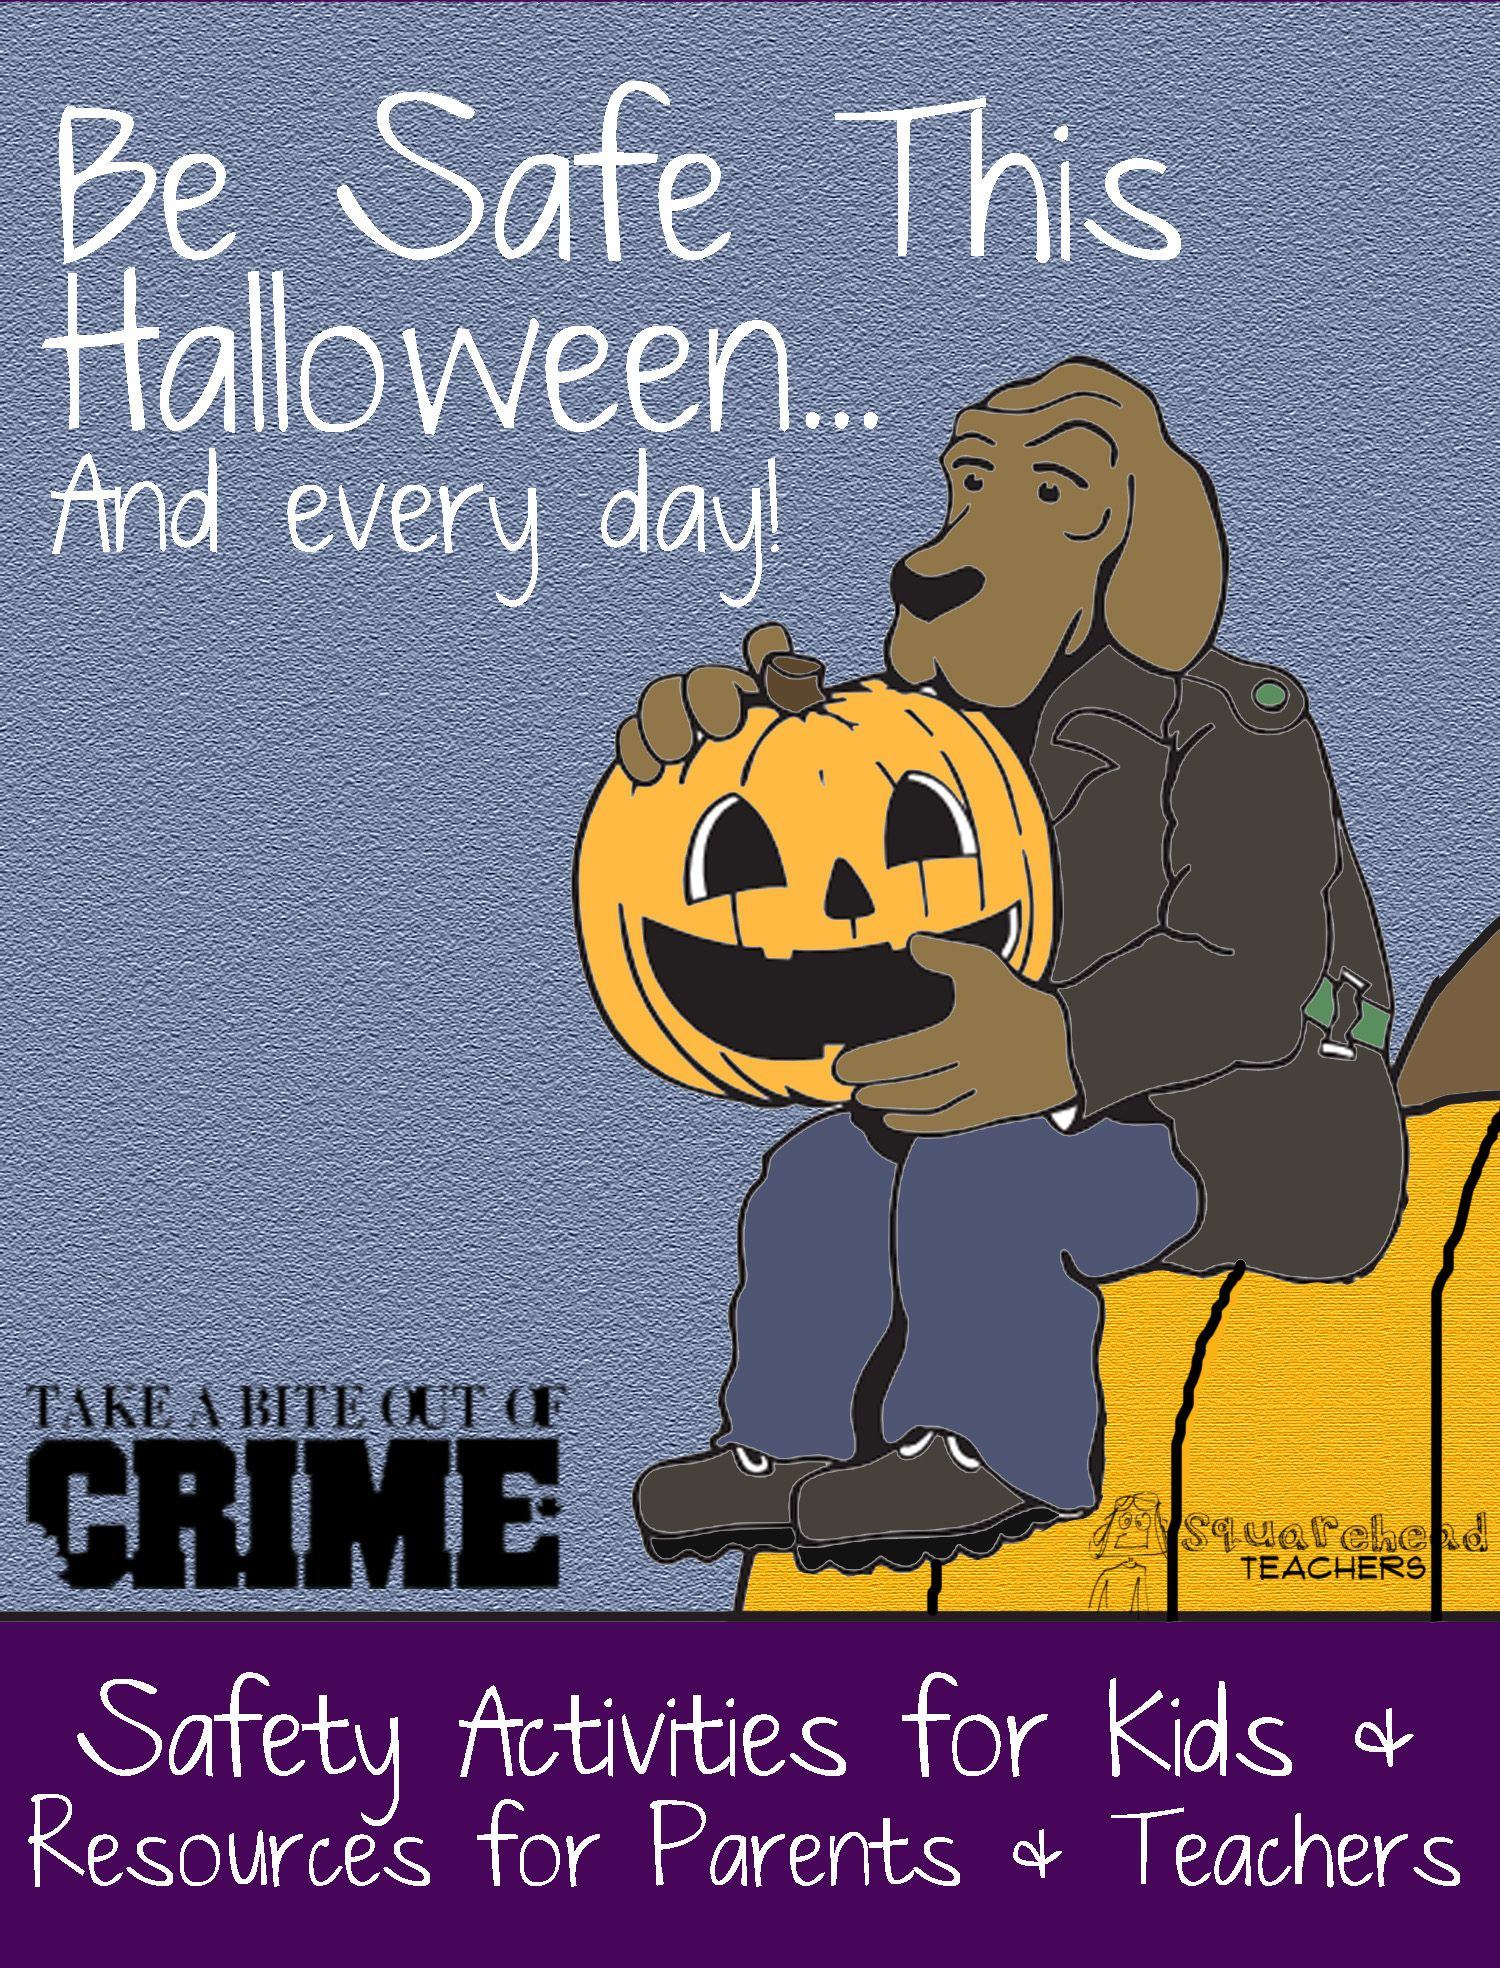 Safety While TrickorTreating Activities for kids, Free